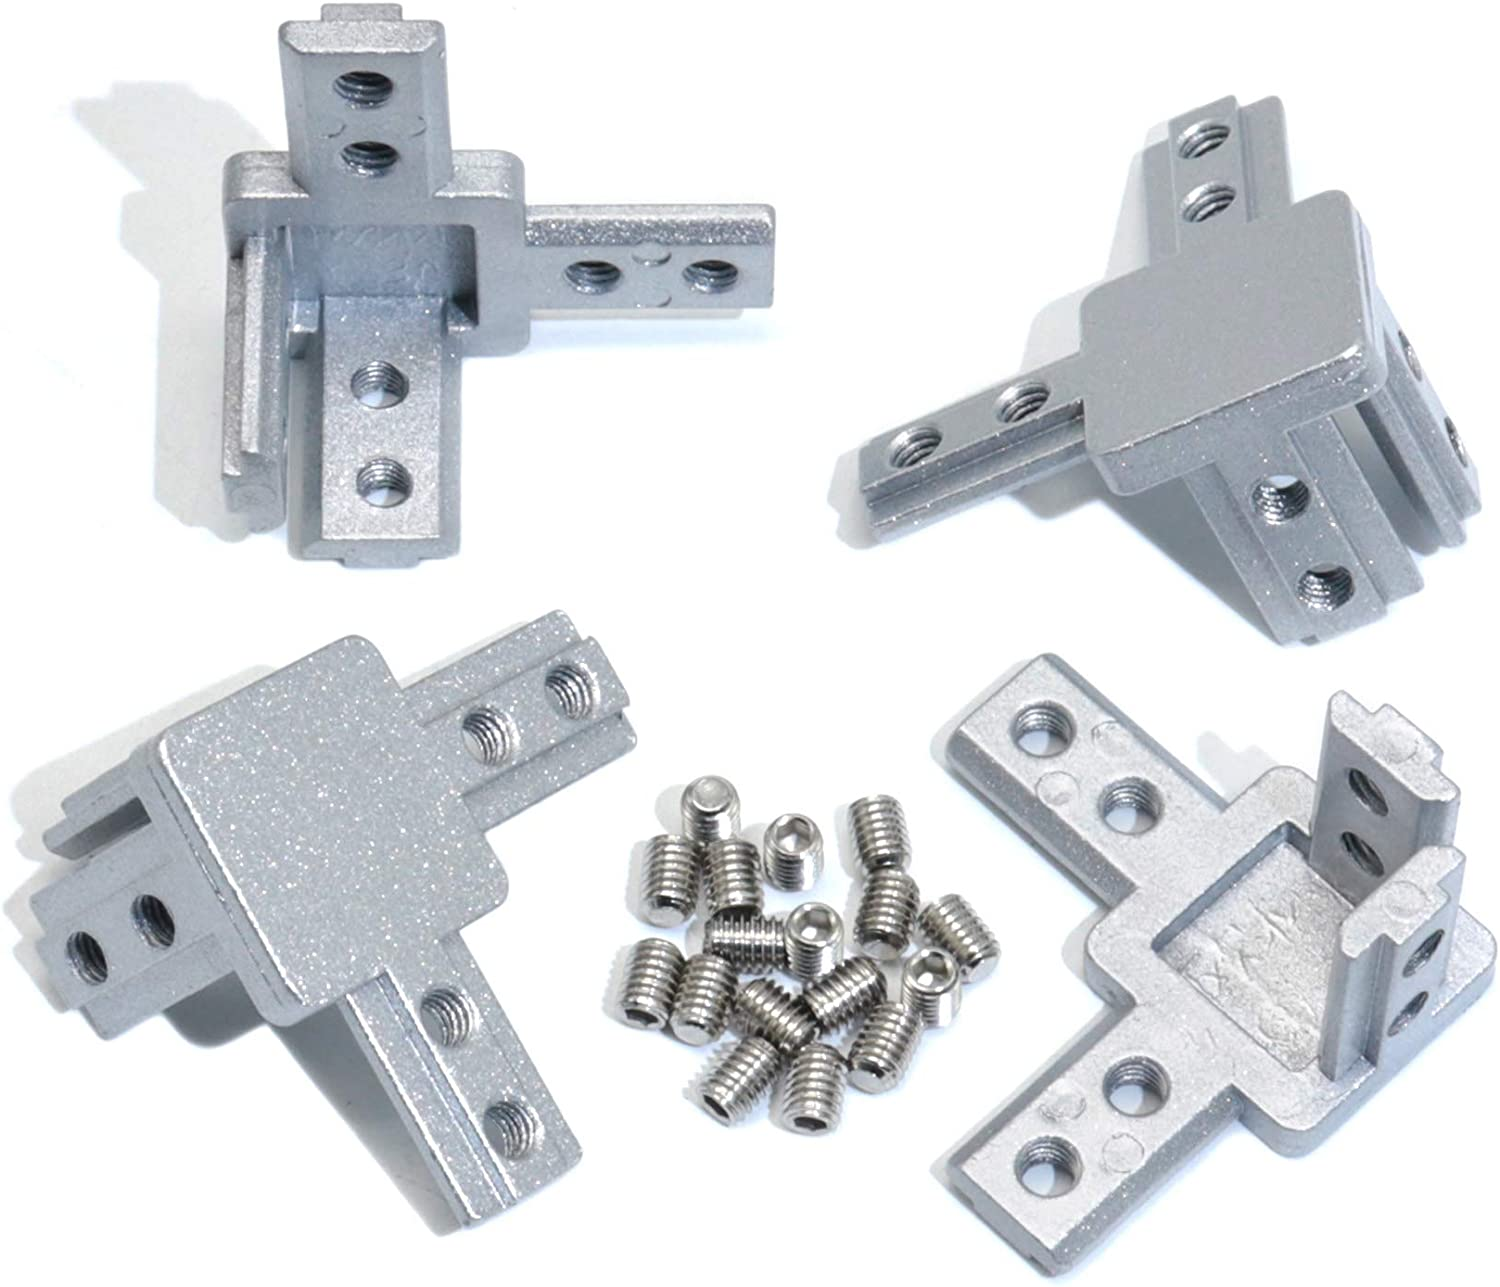 KOOTANS 4pcs 3030 Series 3 Outlet sale feature Way Bracket End Spasm price Corner with Connector